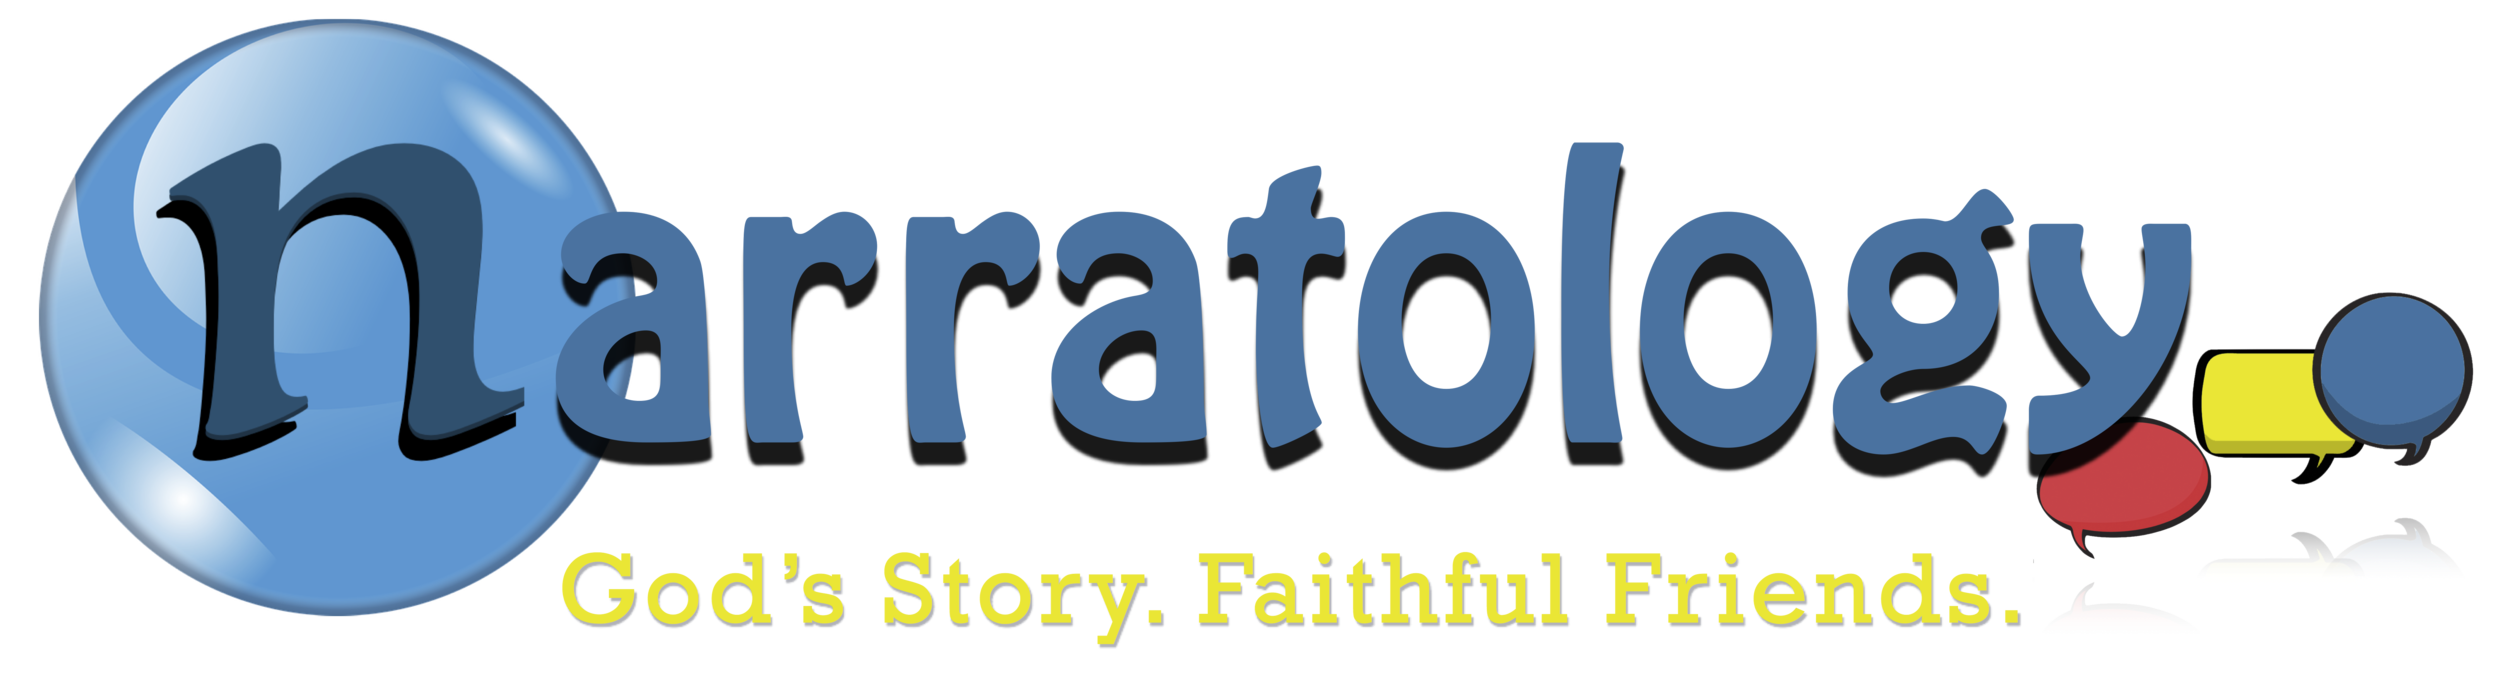 Narratology Branding Image